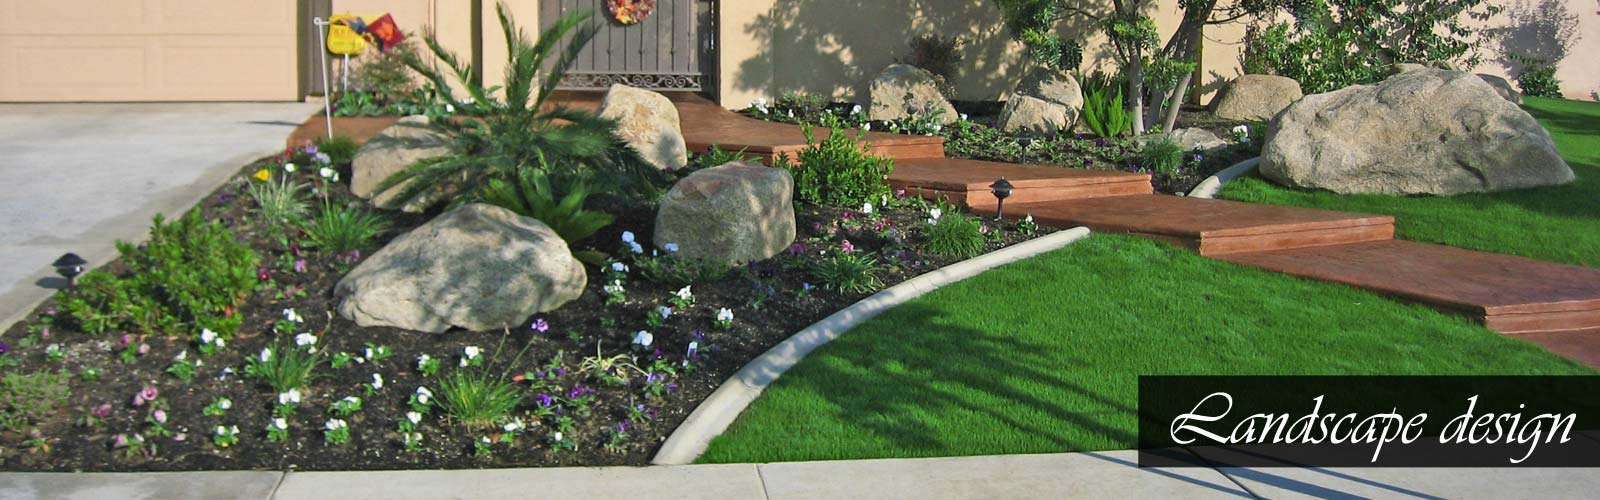 Bakersfield Landscape design experts